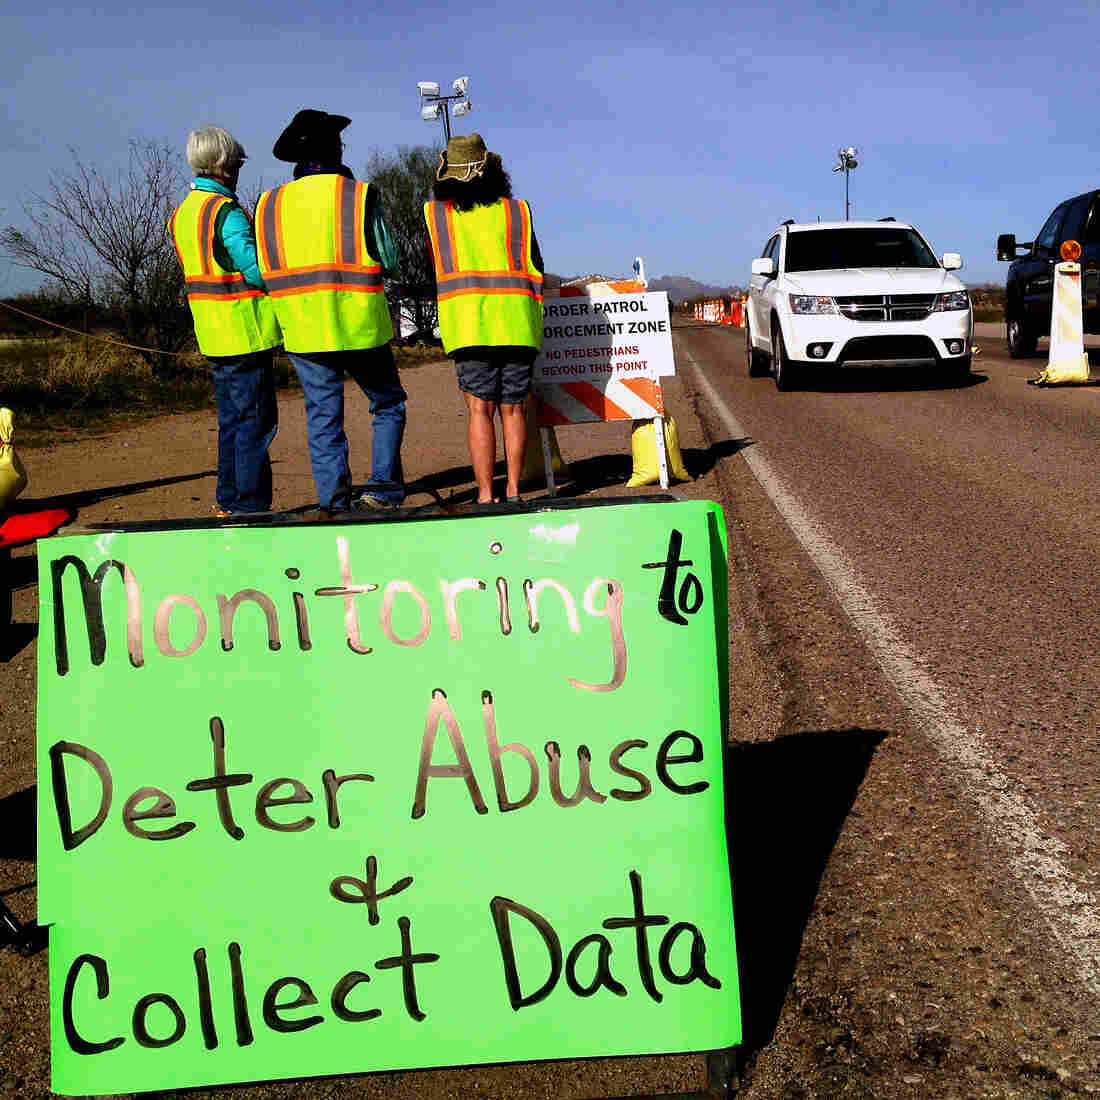 Members of the Arivaca, Ariz., community monitor an immigration checkpoint about 25 miles north of the Mexican border. Some residents say border agents go beyond their legal authority.